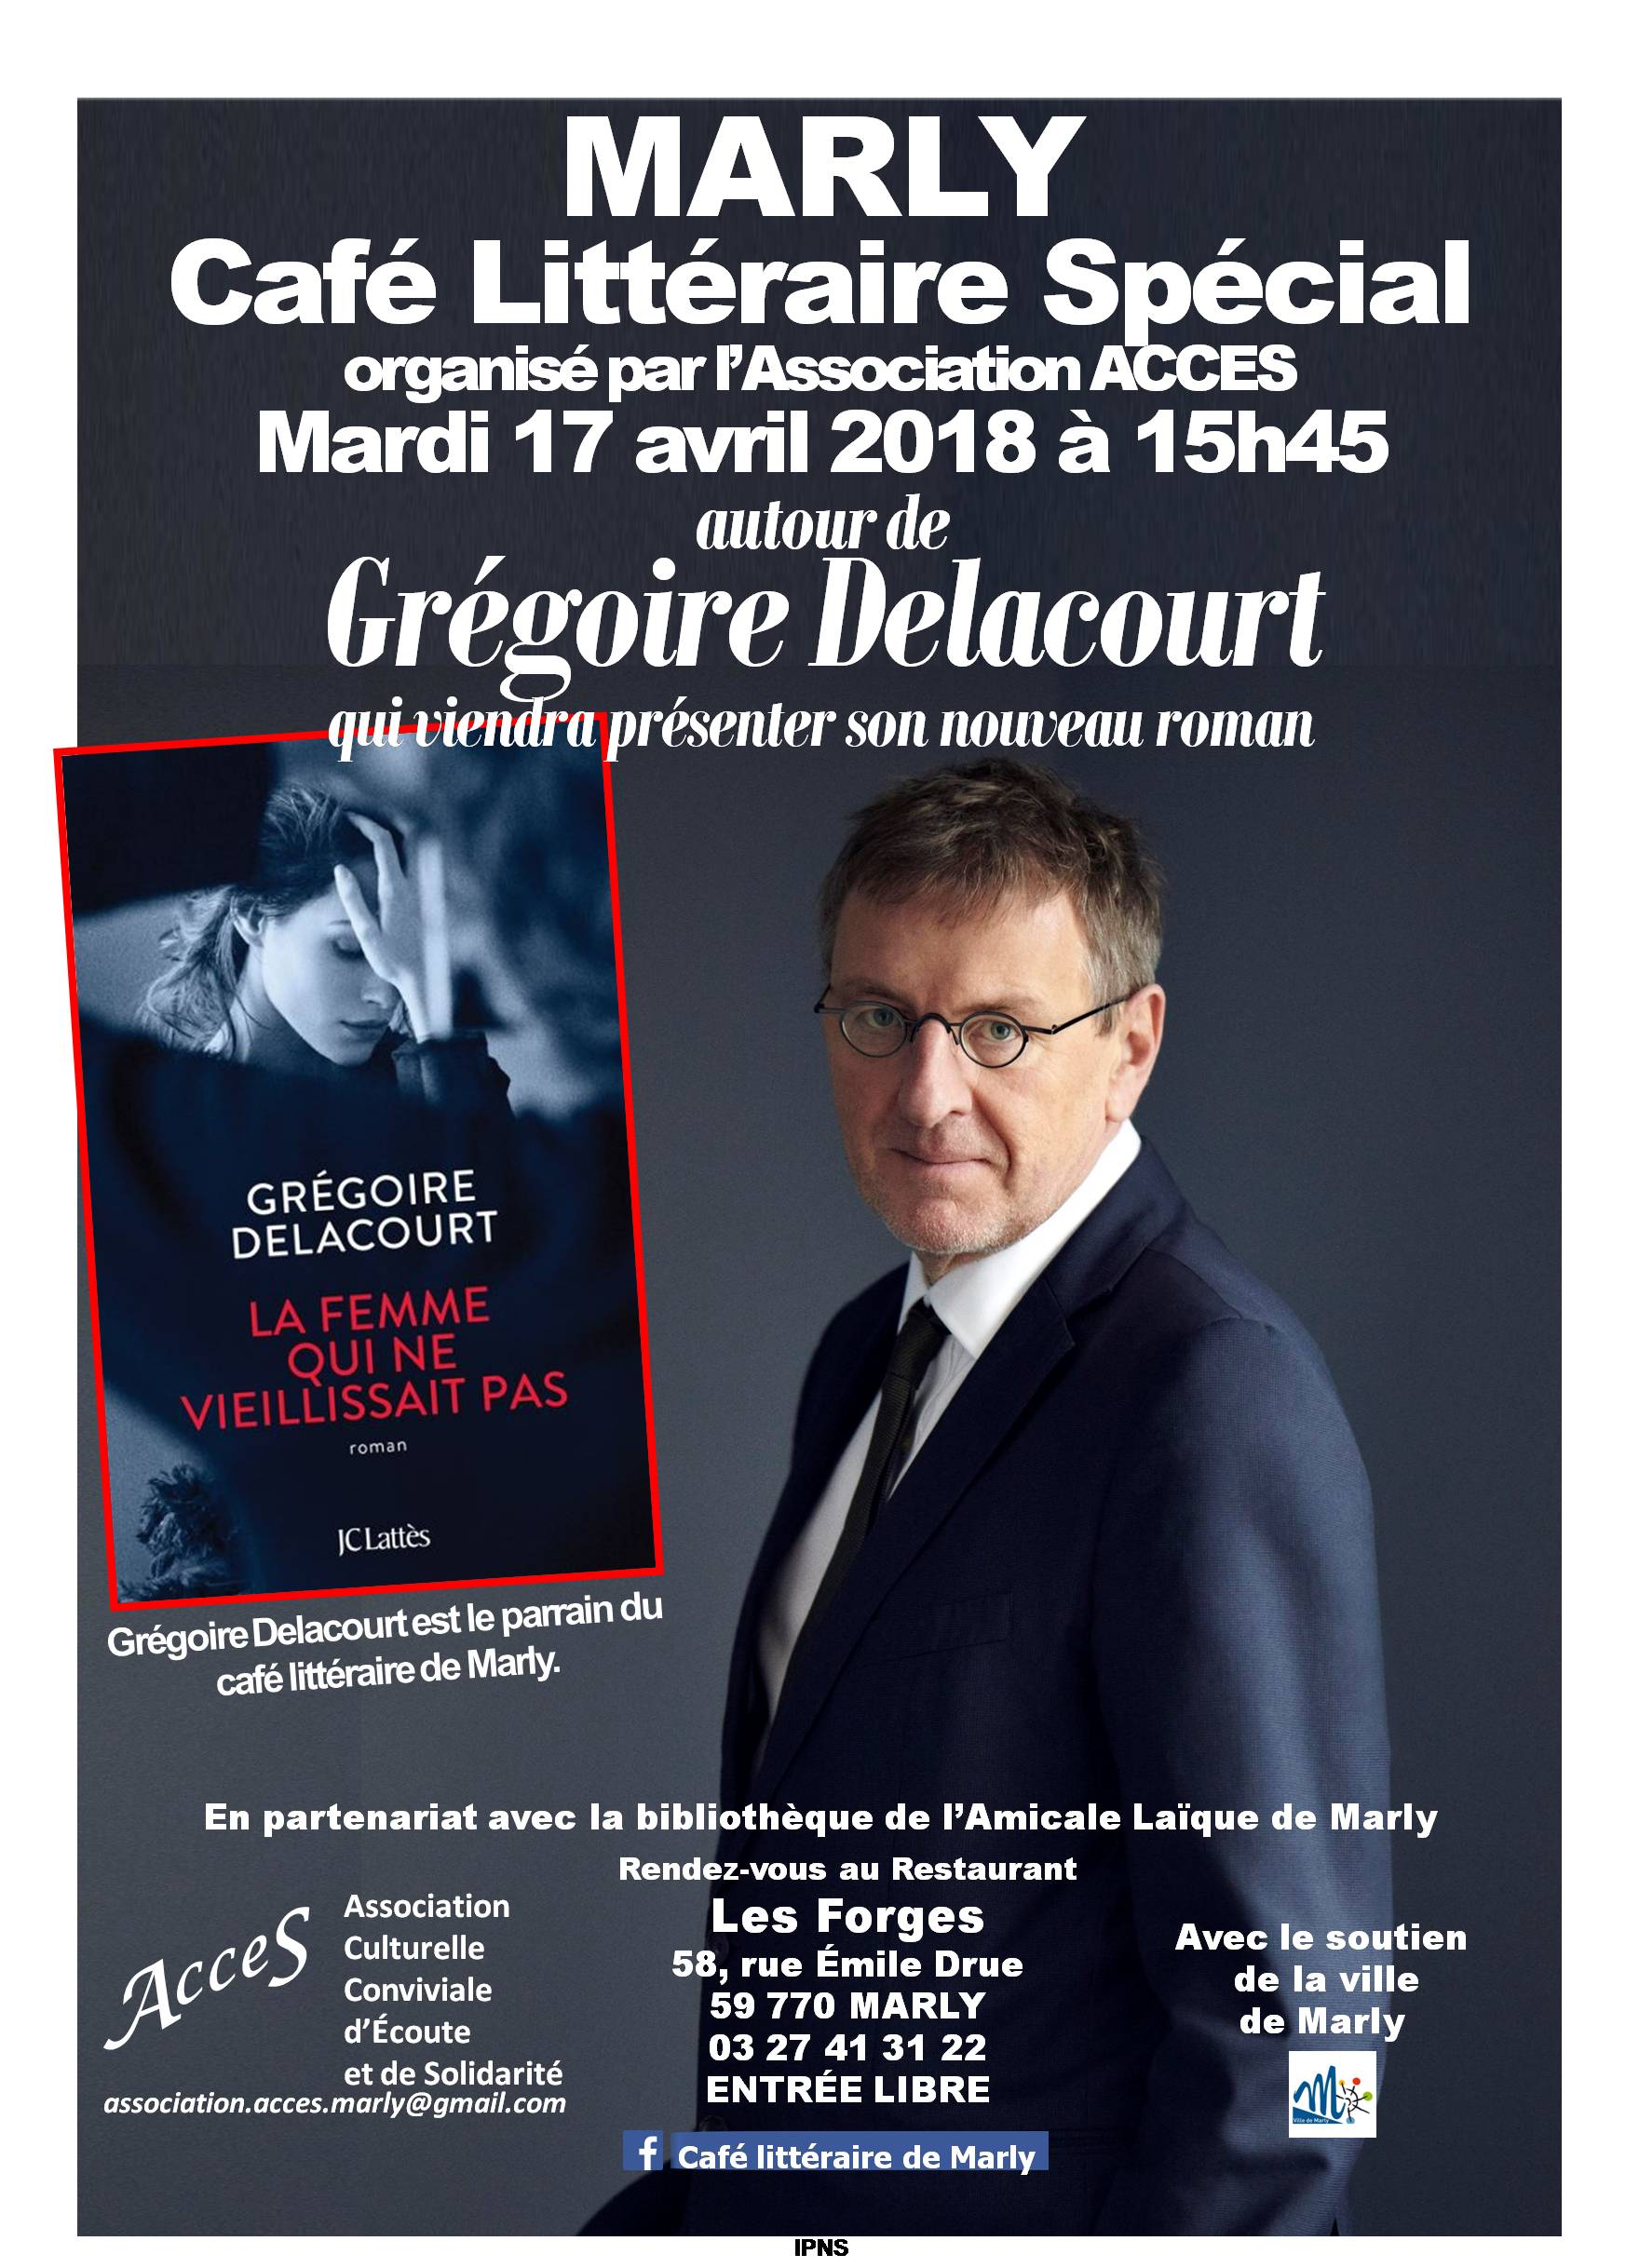 Marly Avril 17 Gregoire Delacourt 2ème